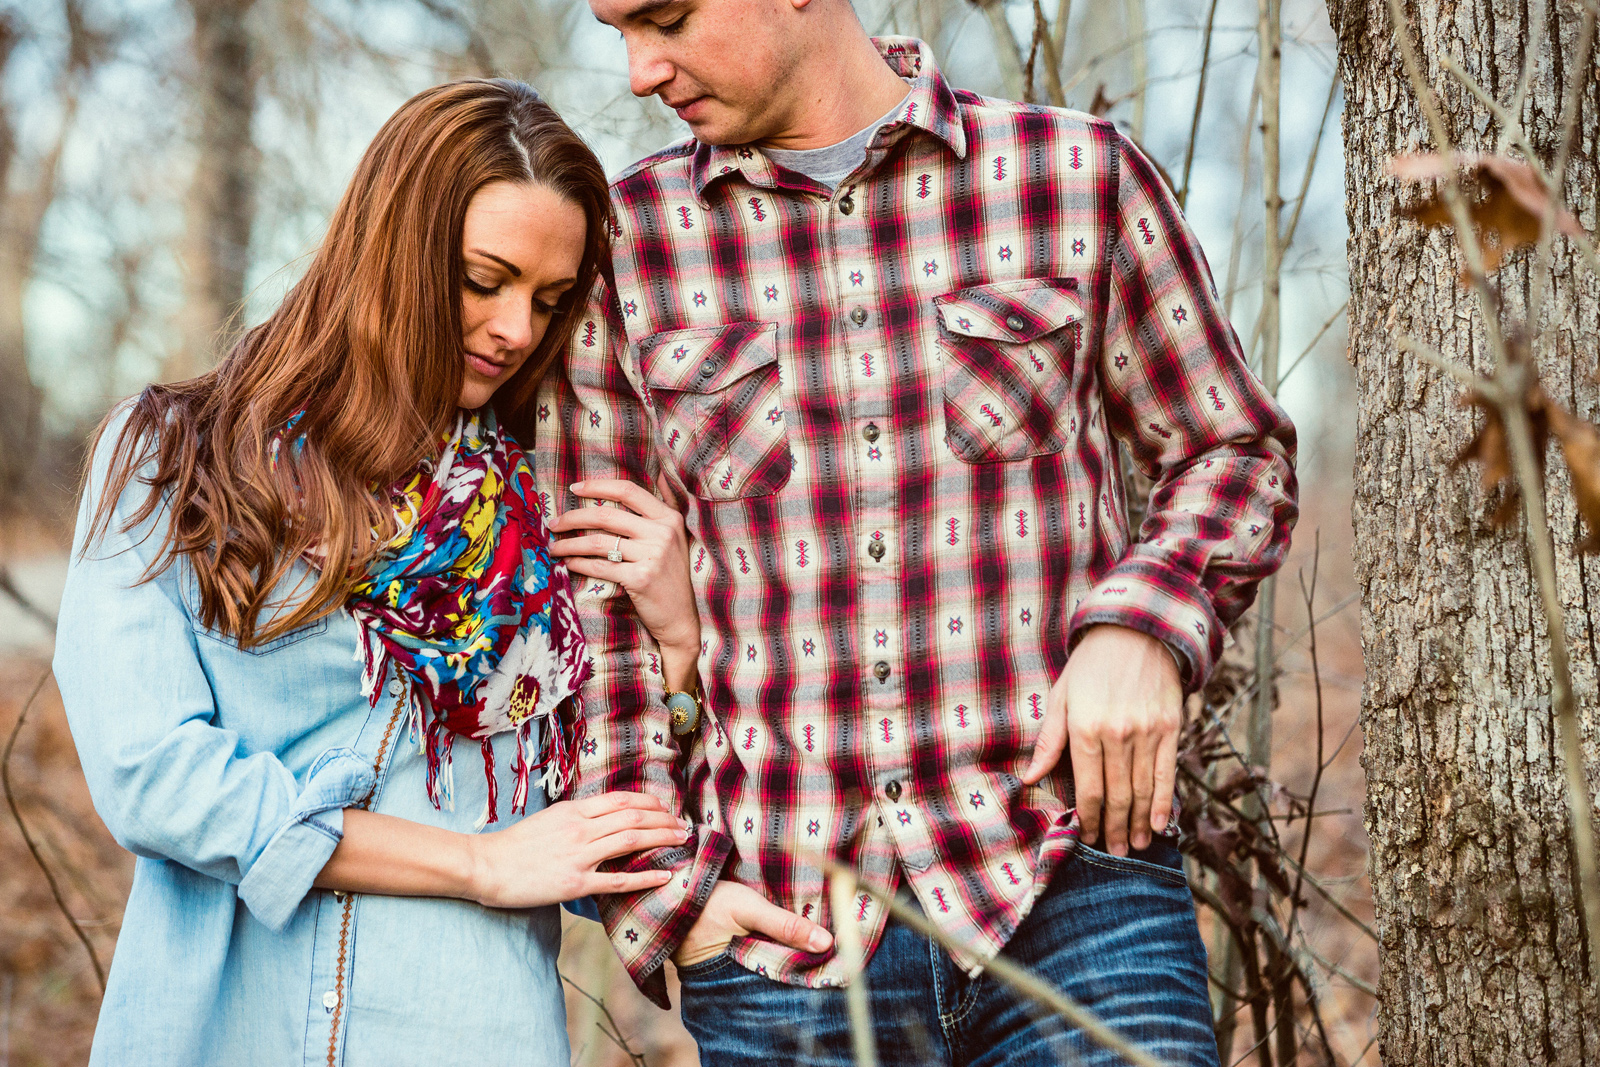 Oldani-Photography-St-Charles-August-A-Busch-Memorial-Area-Engagement-Session-engagement-photos_20141128_170922.jpg